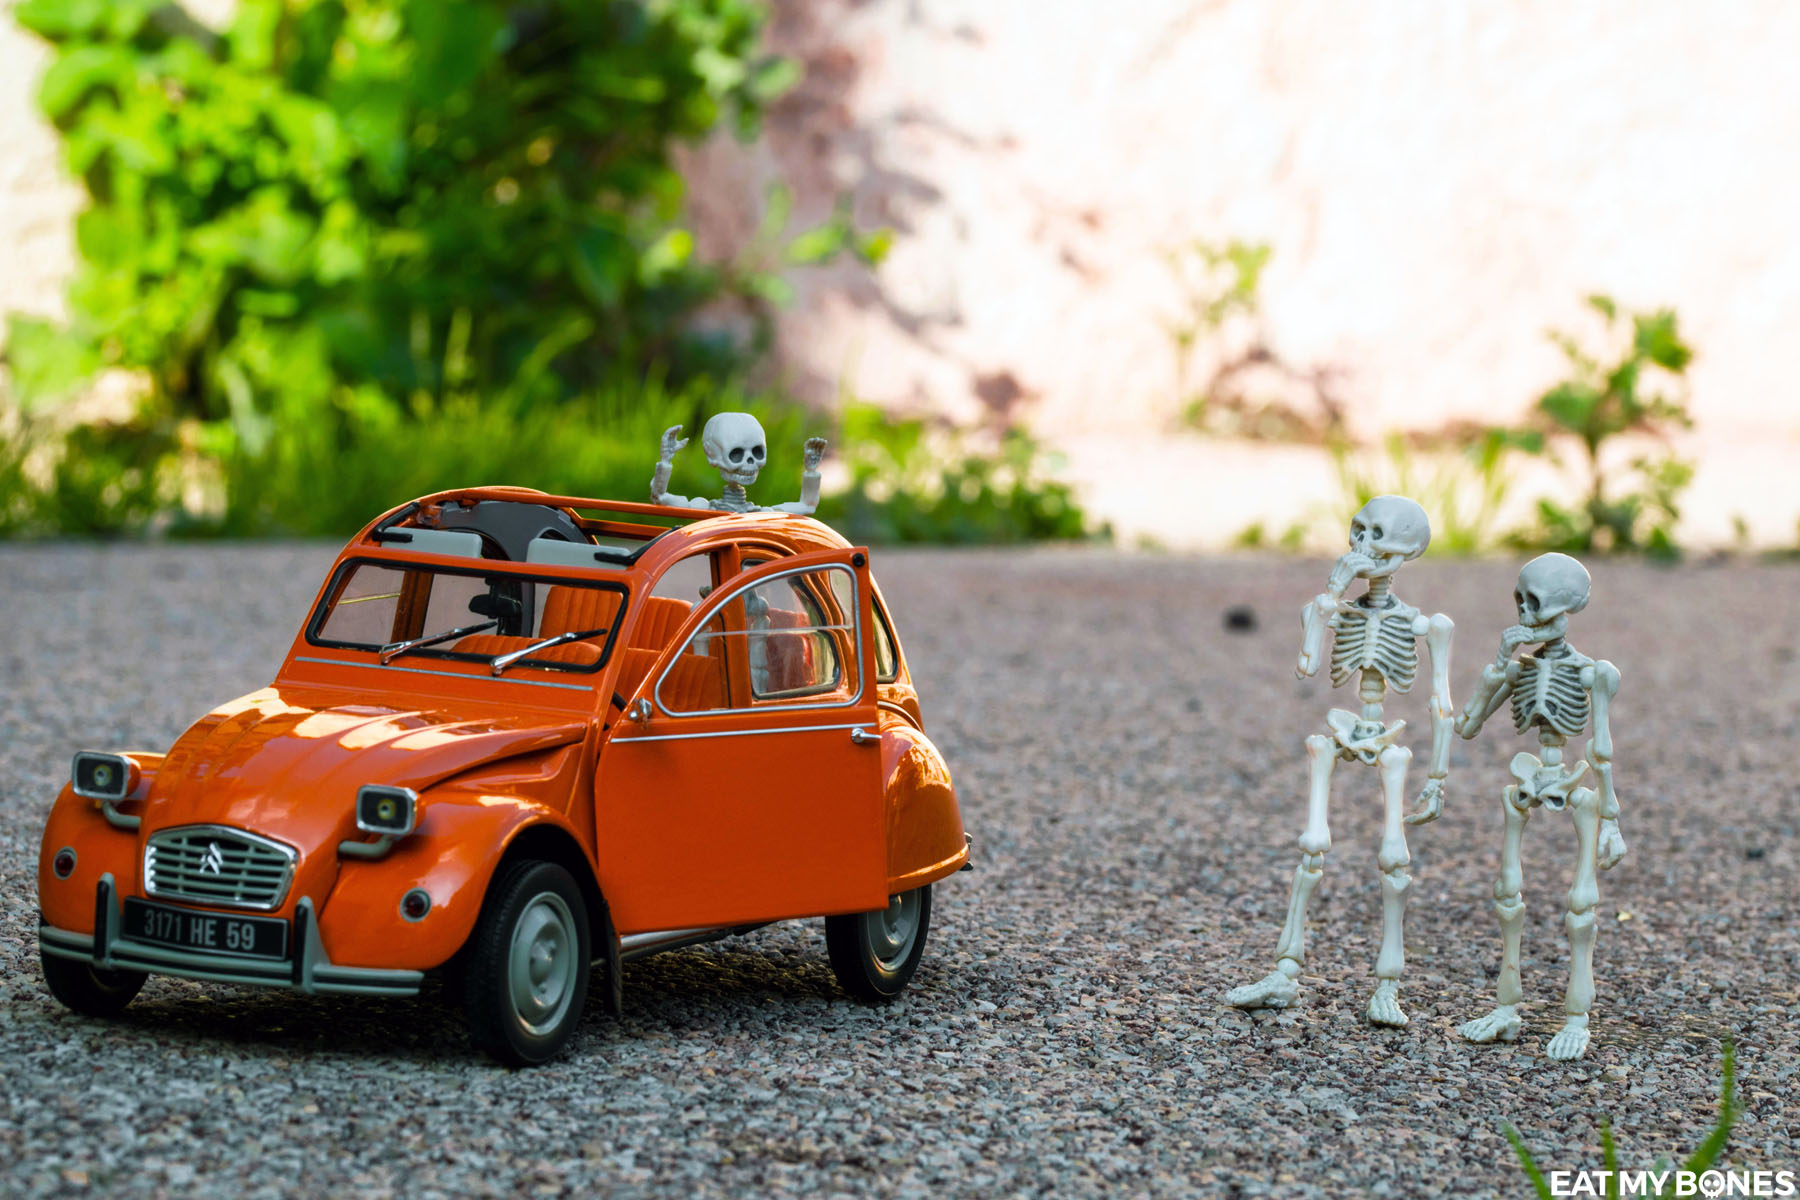 New car : Citroën 2CV - Pose Skeleton - Toy photography - Miniature - Eat my Bones